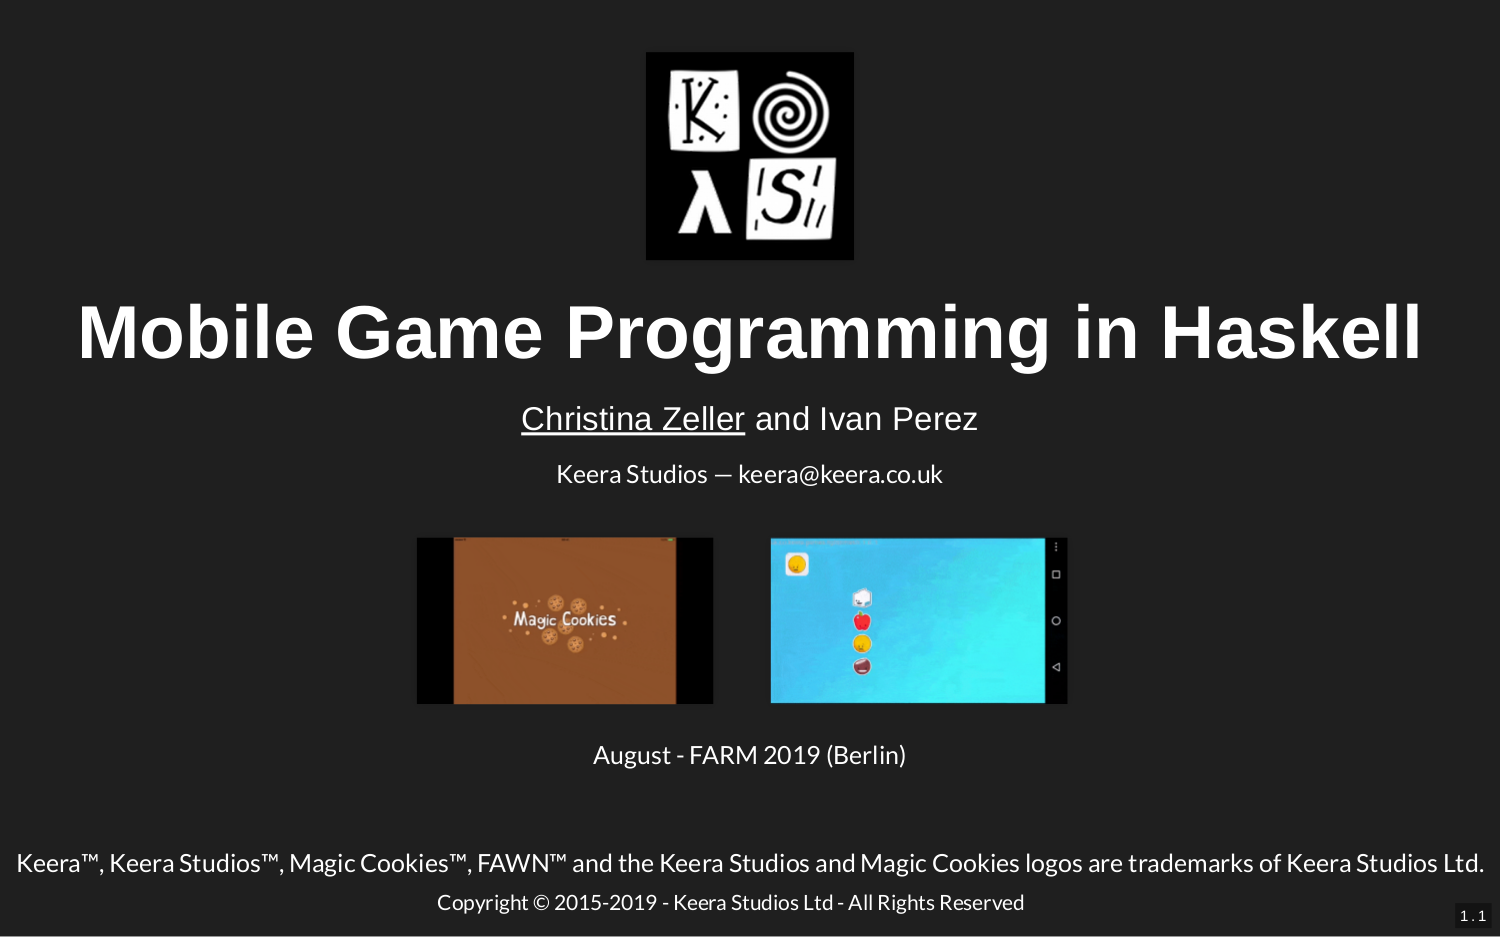 Mobile Game Programming in Haskell – FARM 2019 [Talk]